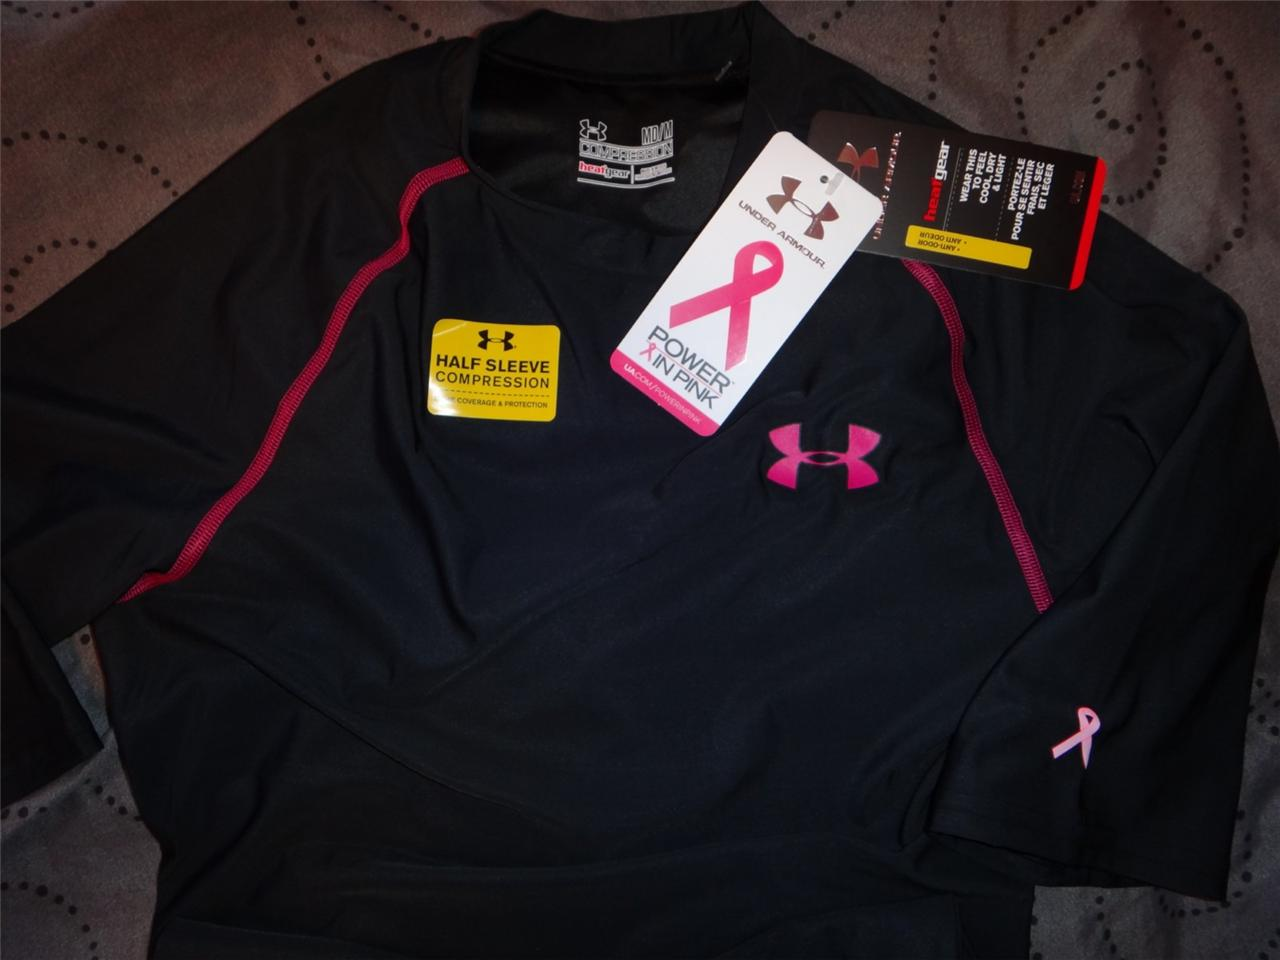 under armour compression heatgear pink breast cancer shirt